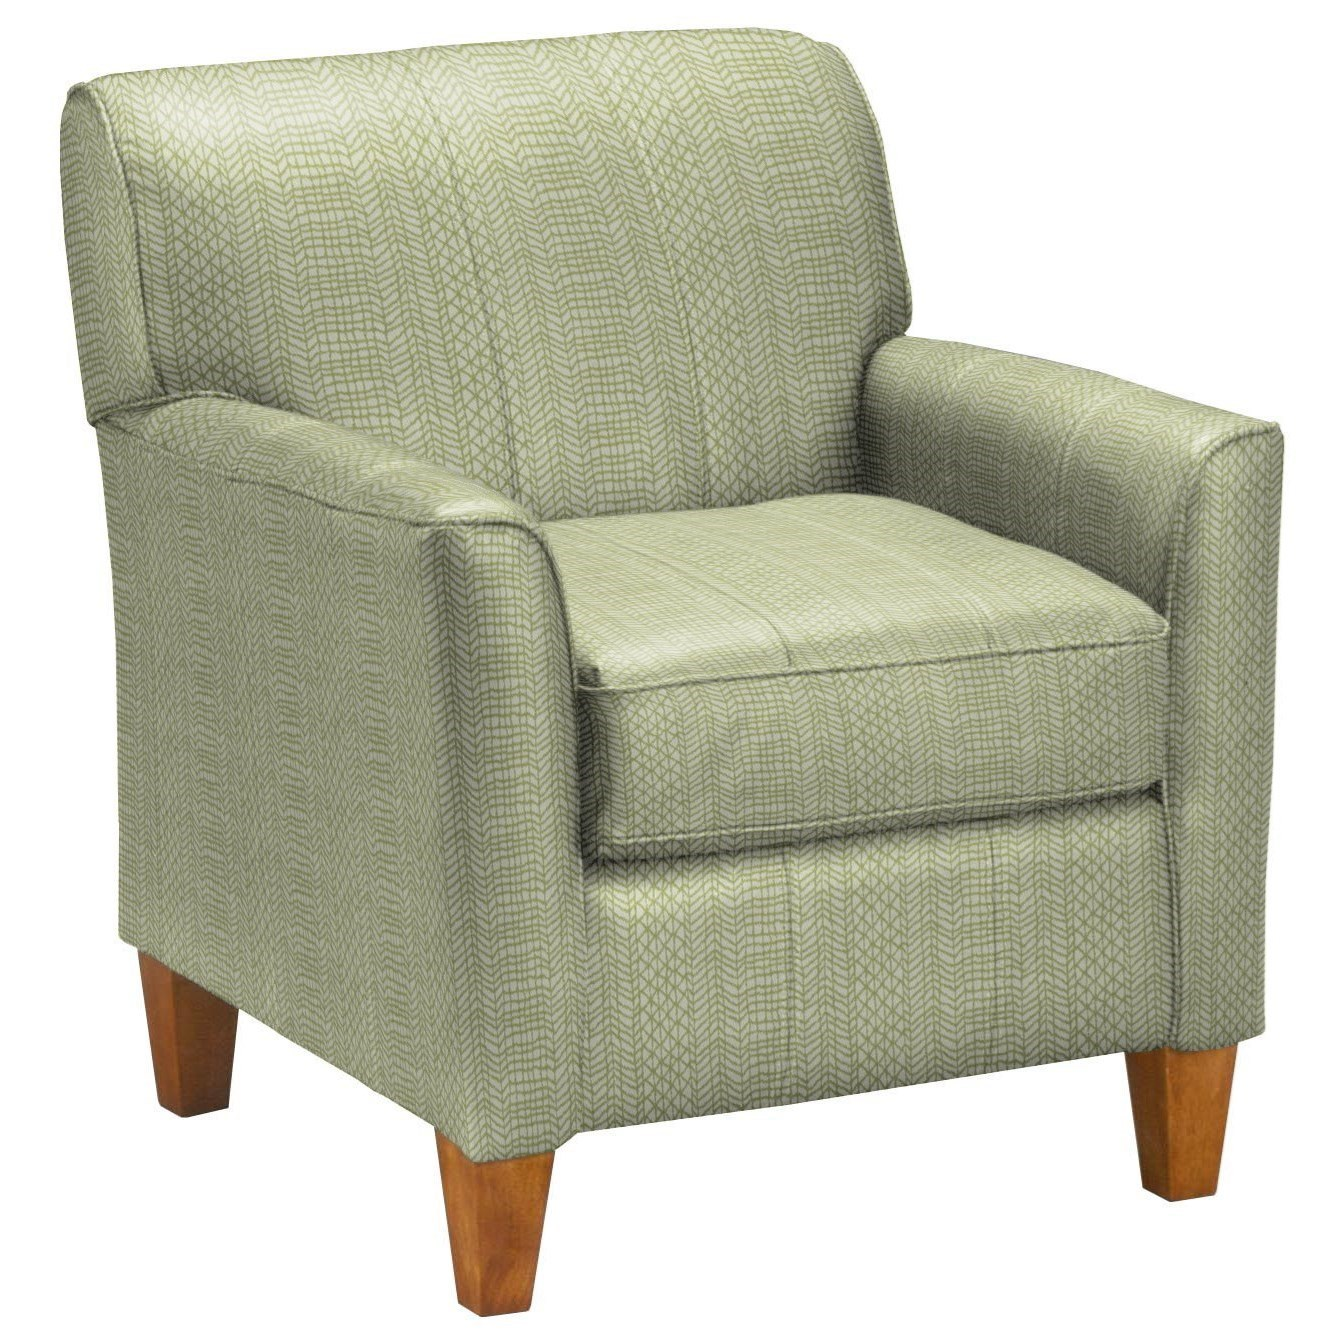 Best Home Furnishings Chairs - Club Risa Club Chair - Item Number: -1159276652-39151